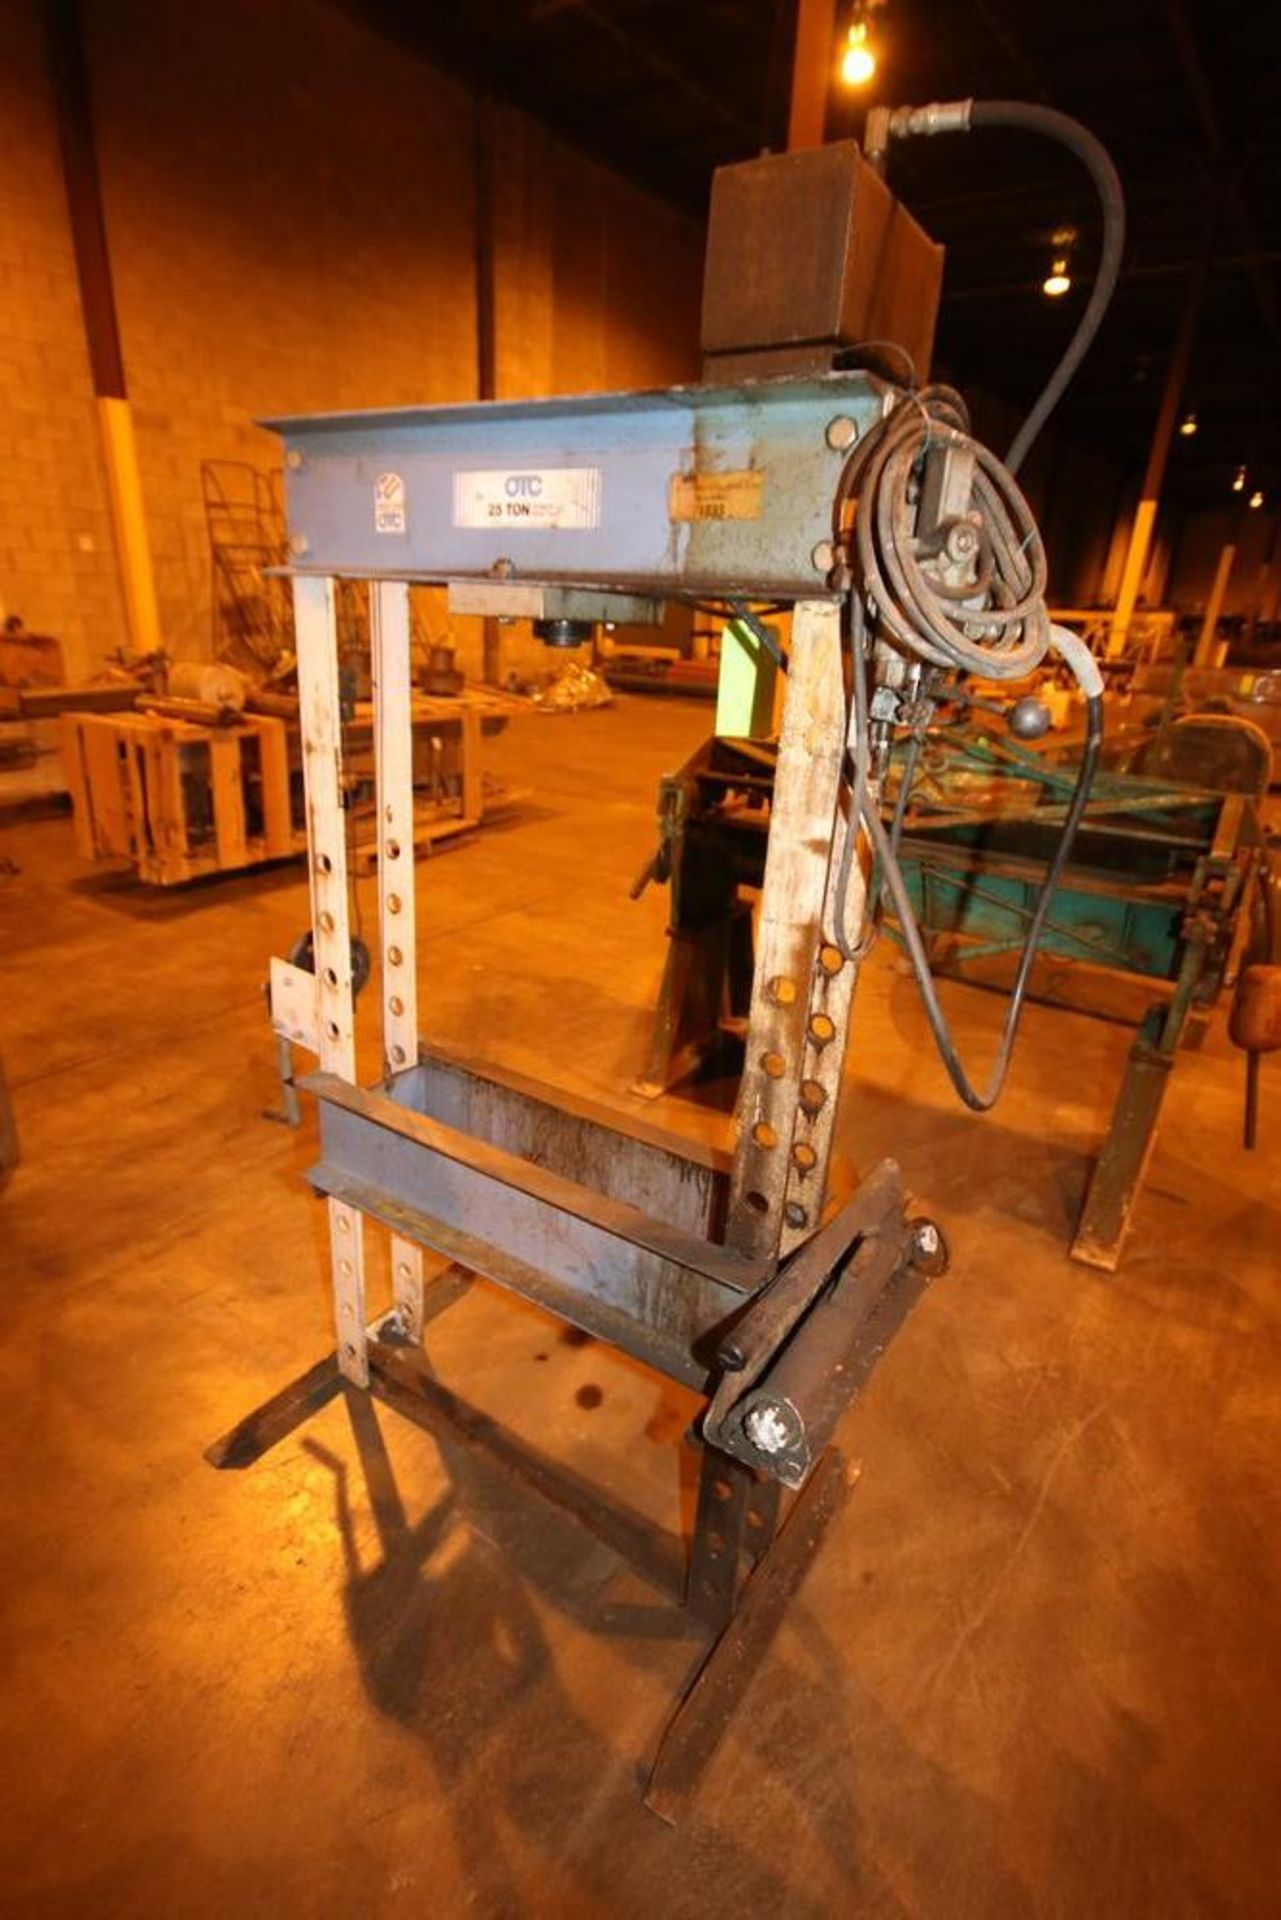 Lot 99 - OTC 25 Ton Hydraulic Shop Press Frame, S/N 1833, with G.E. 1 hp Motor (NOTE: Missing Press &